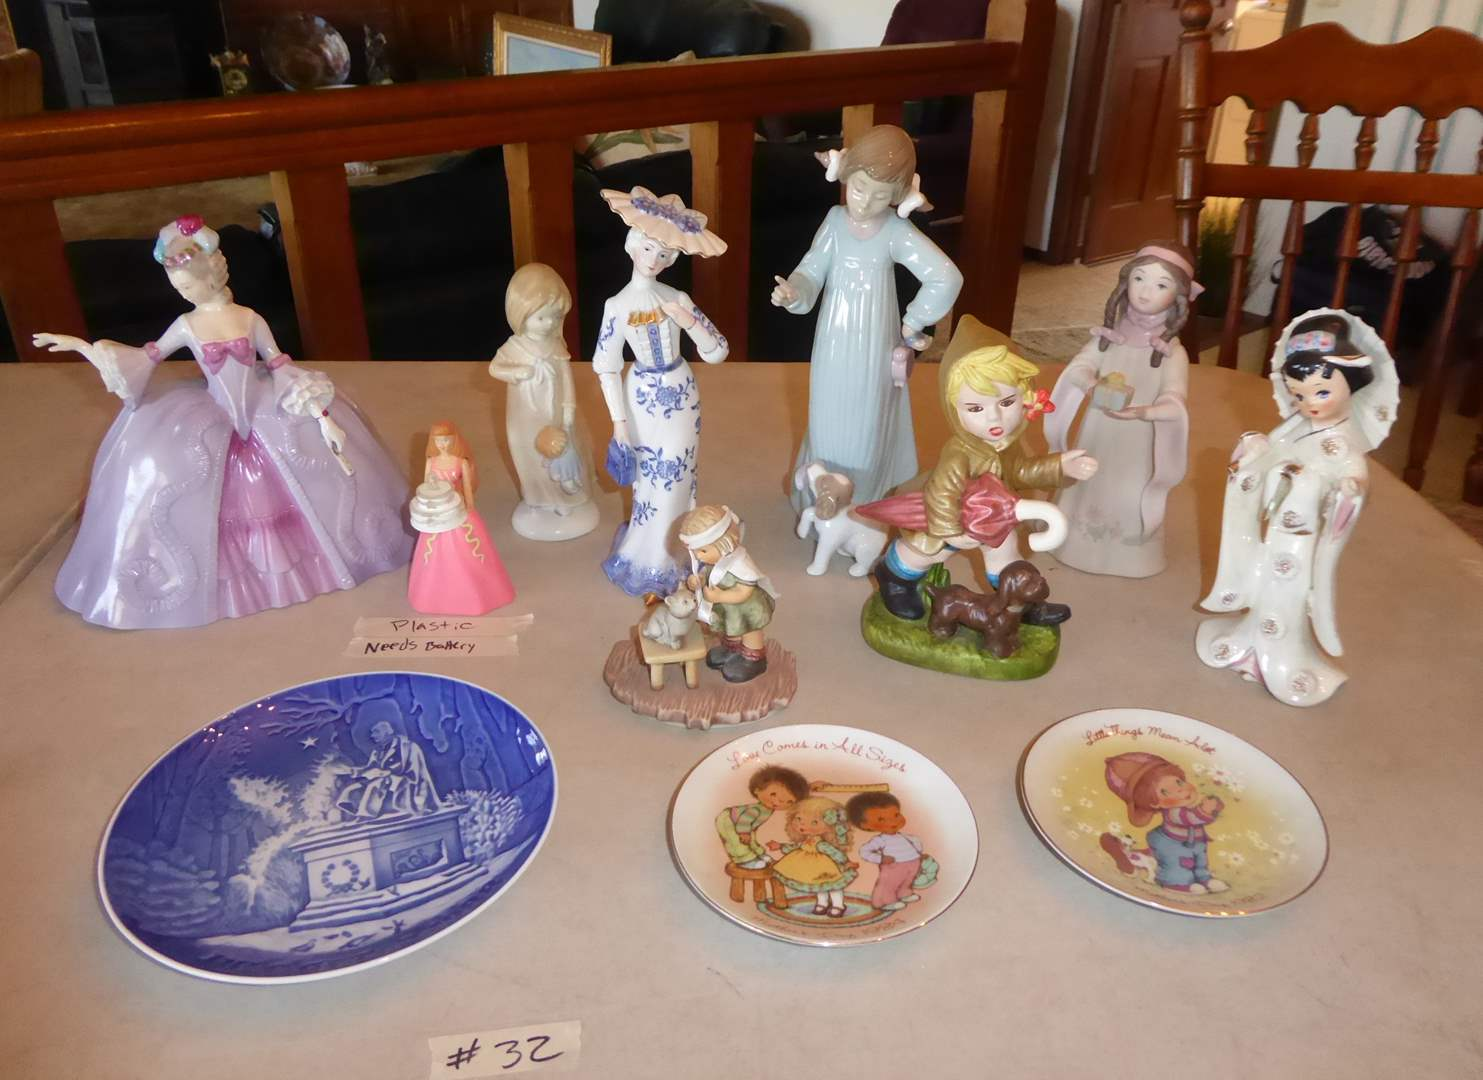 Lot # 32 - Ceramic Figurines & Collectible Plates  (main image)